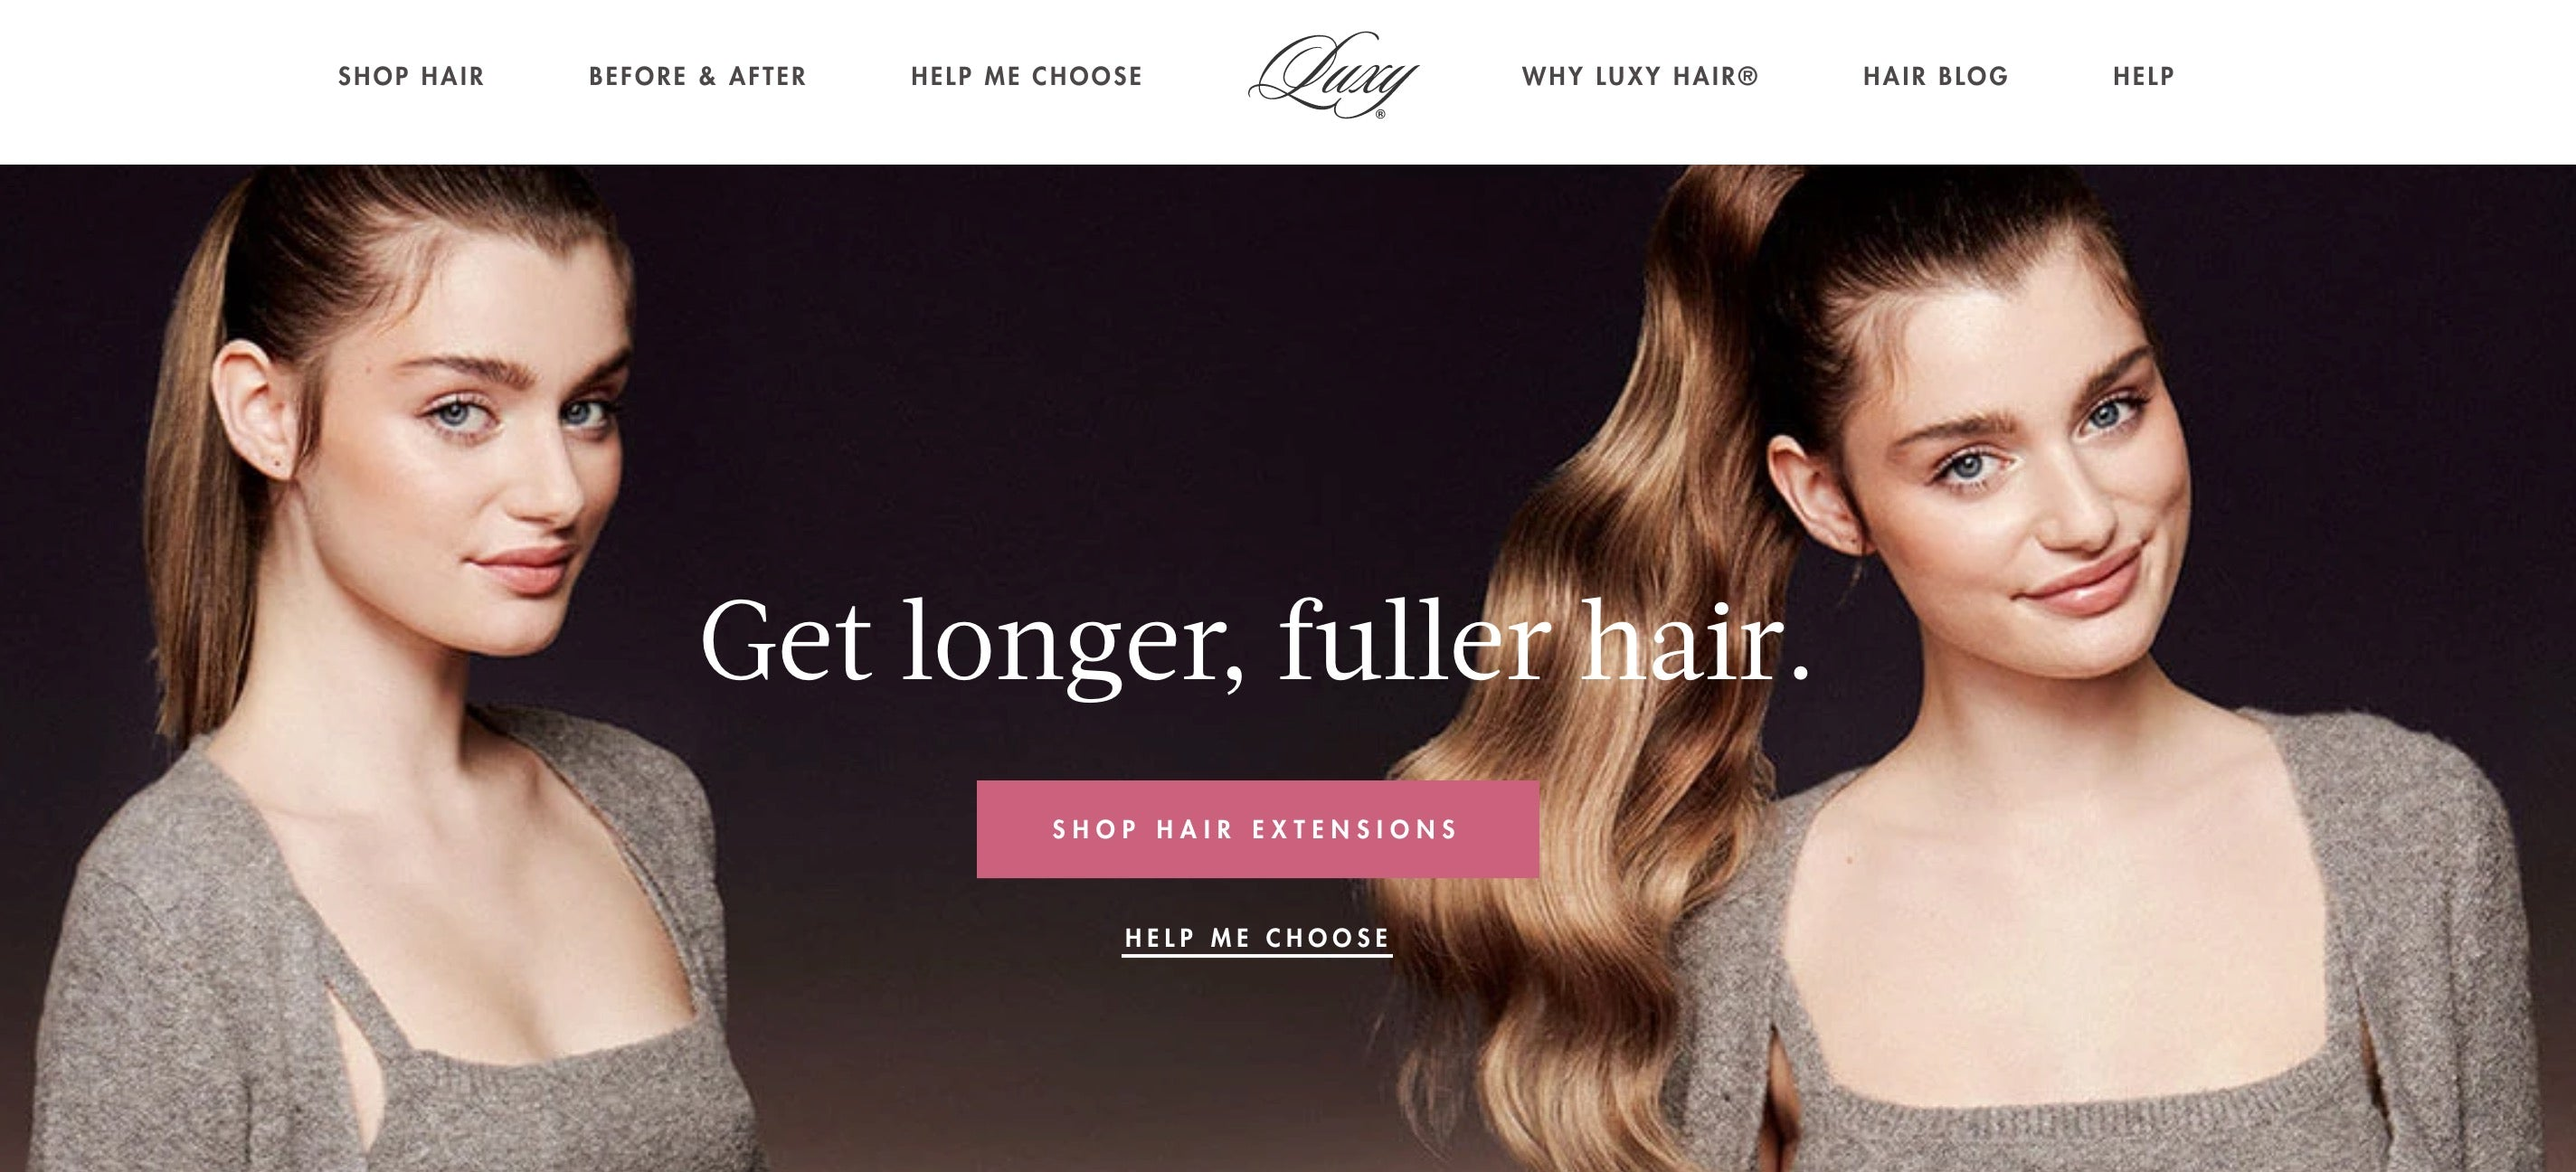 Luxy hair revenue model